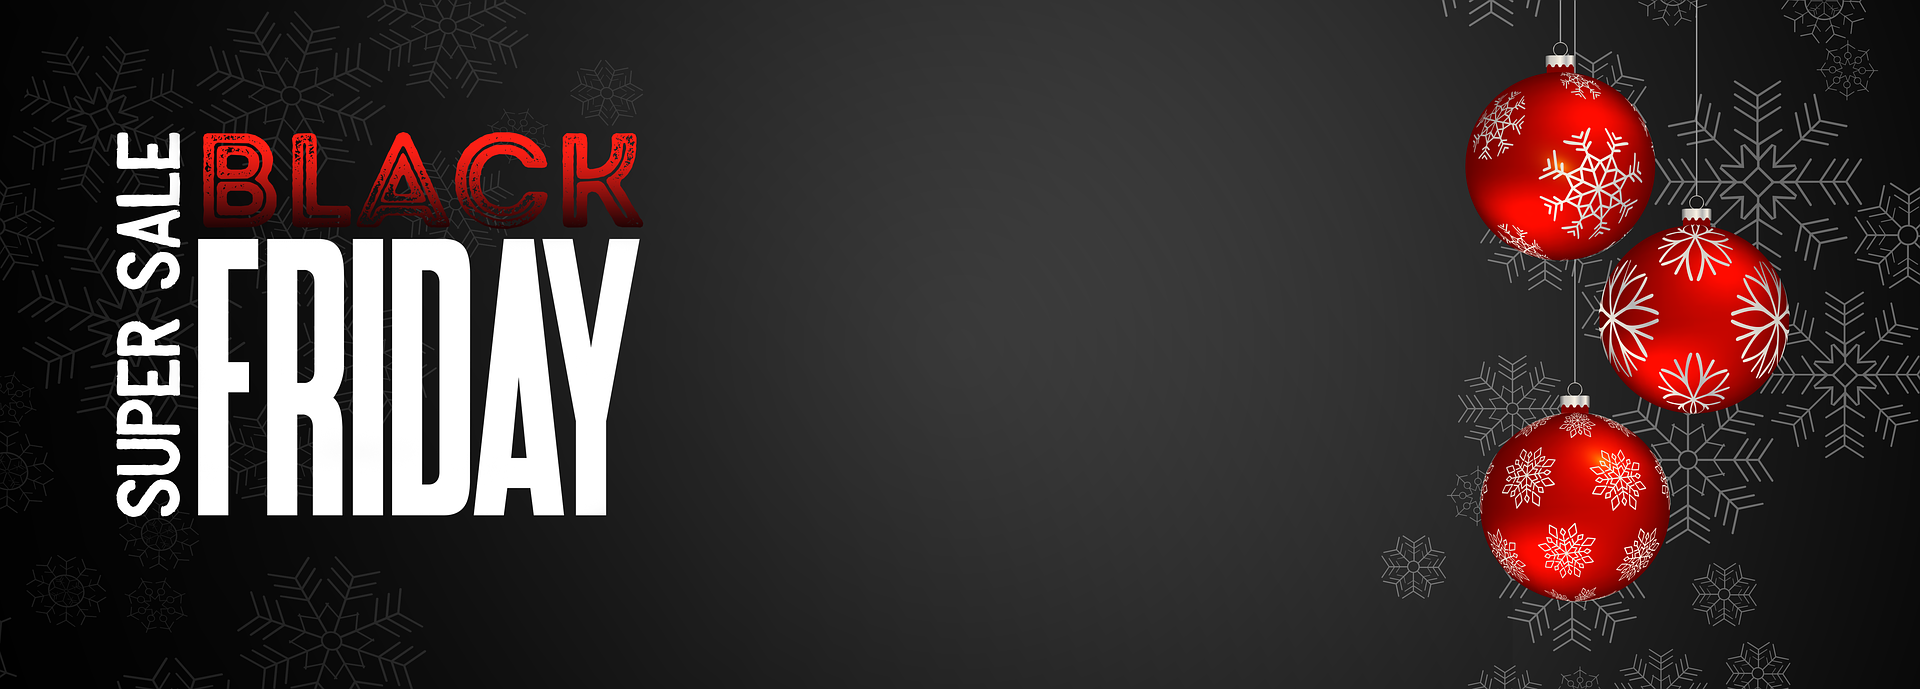 Black Friday Pictures and HD Wallpapers 1920x689